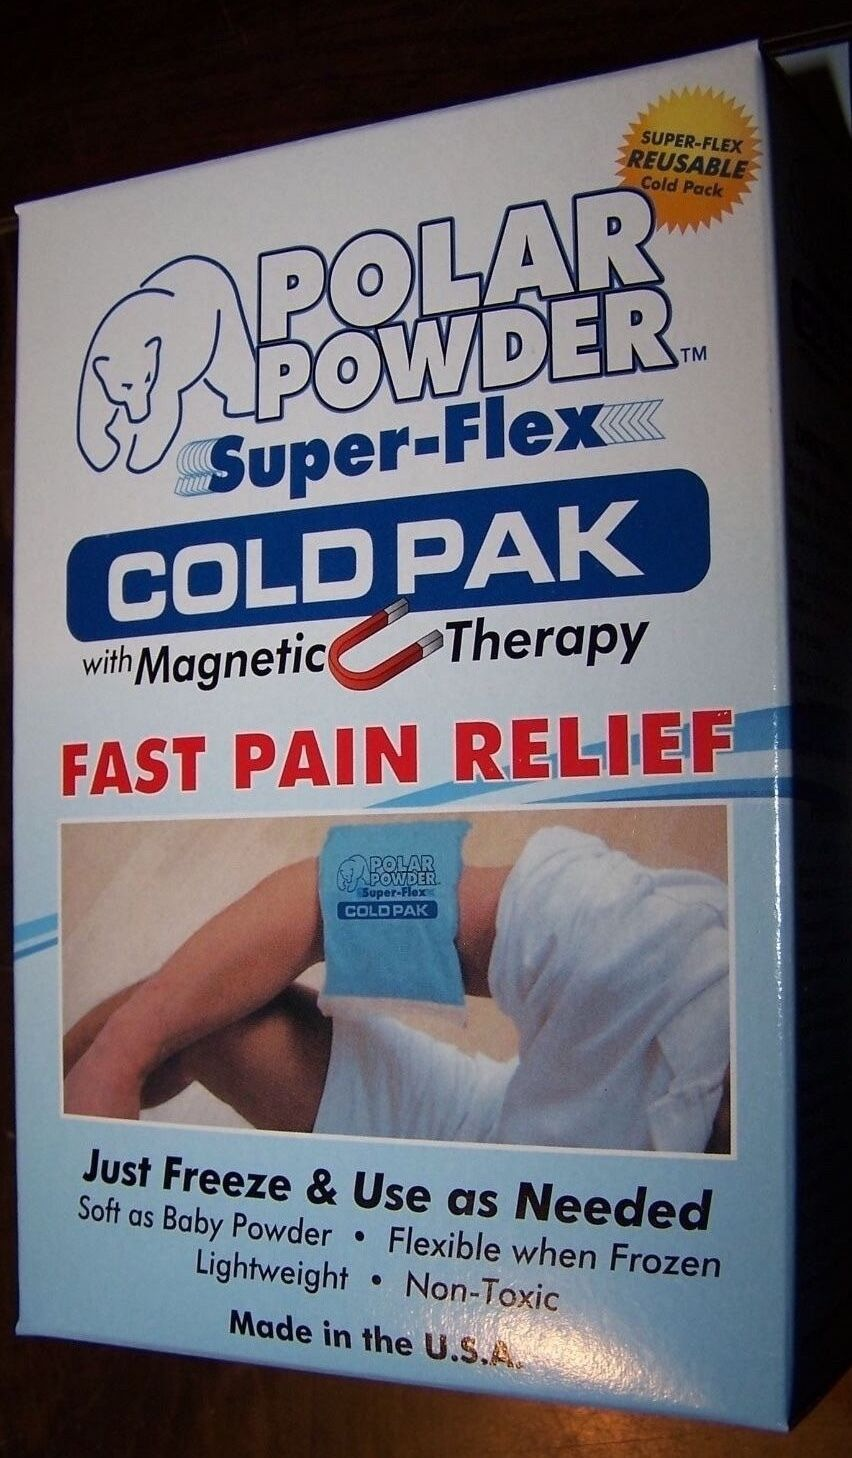 POLAR POWDER SUPER-FLEX COLD PAK WITH MAGNETIC THERAPY-REUSABLE!-MADE IN U.S.A.!